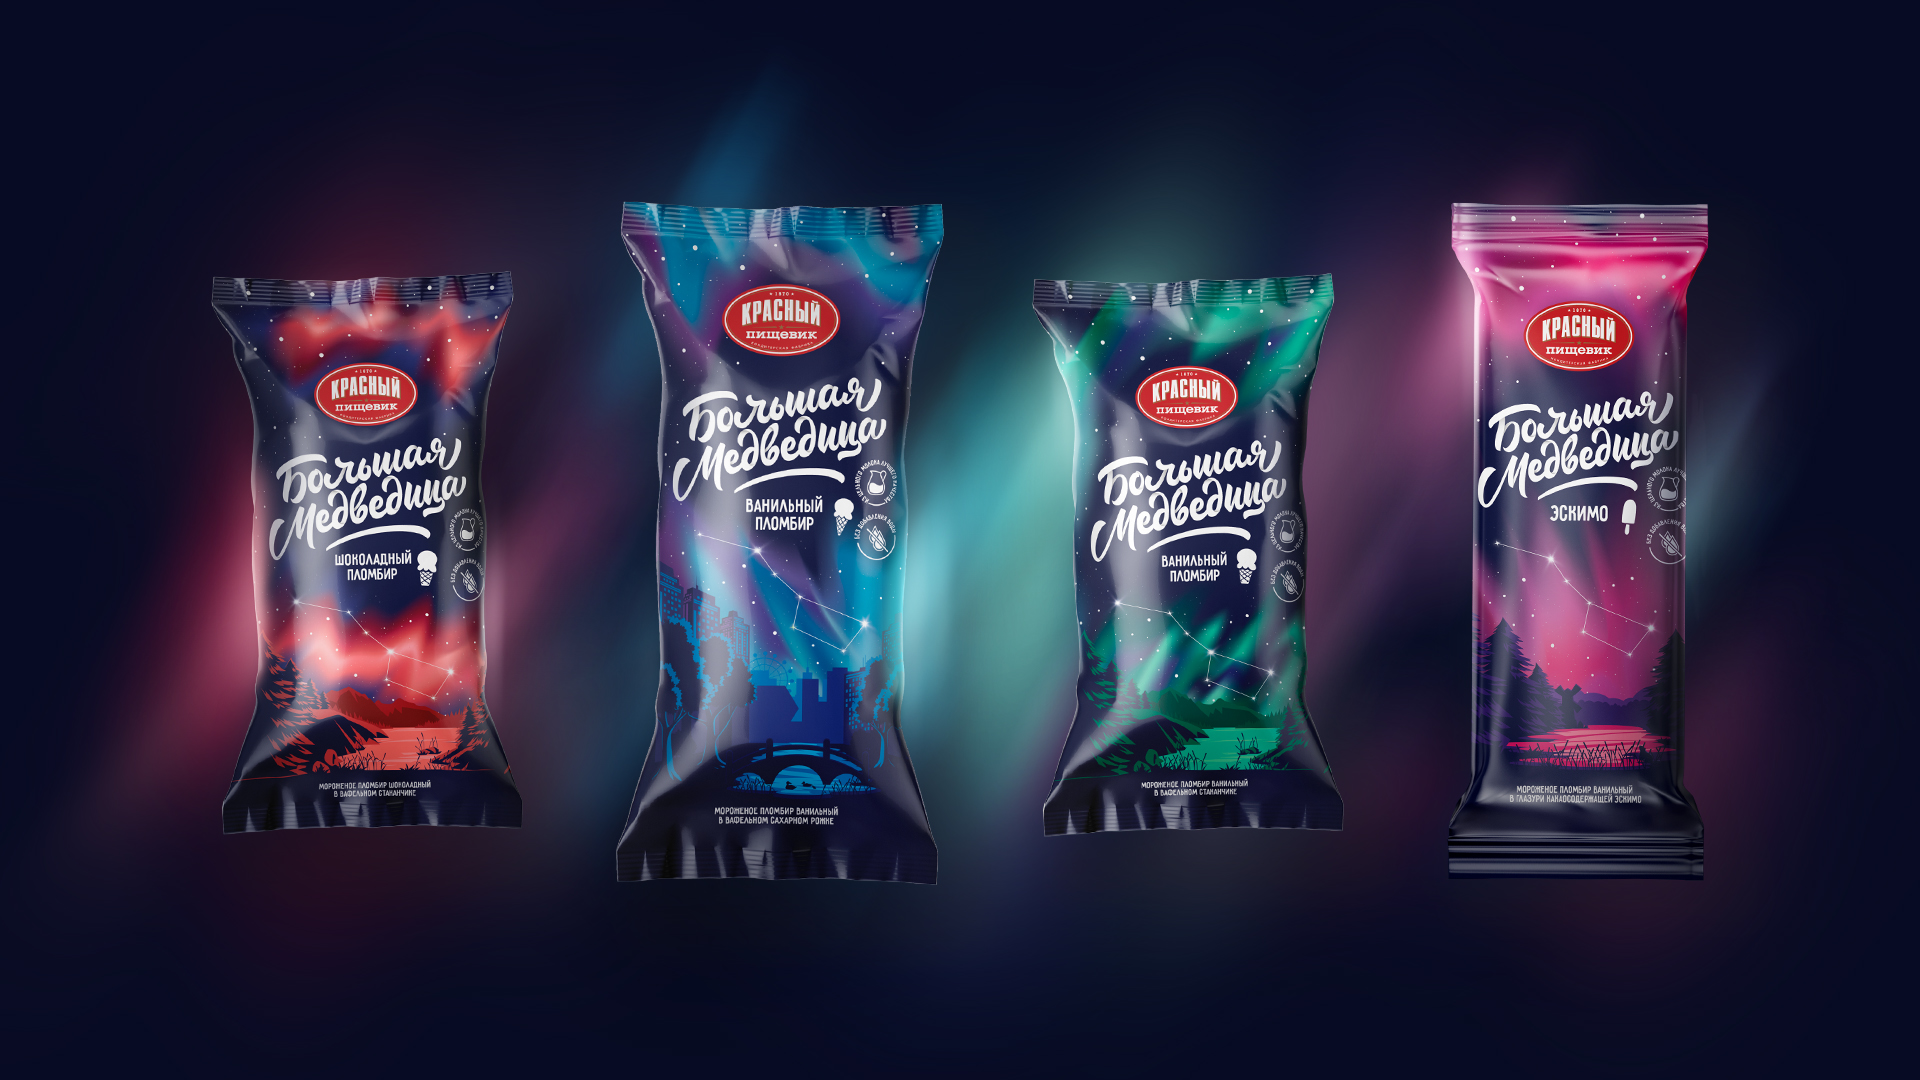 PG Brand Reforming Create Brand and Packaging Design for New Ursa Major Constellation Ice Cream